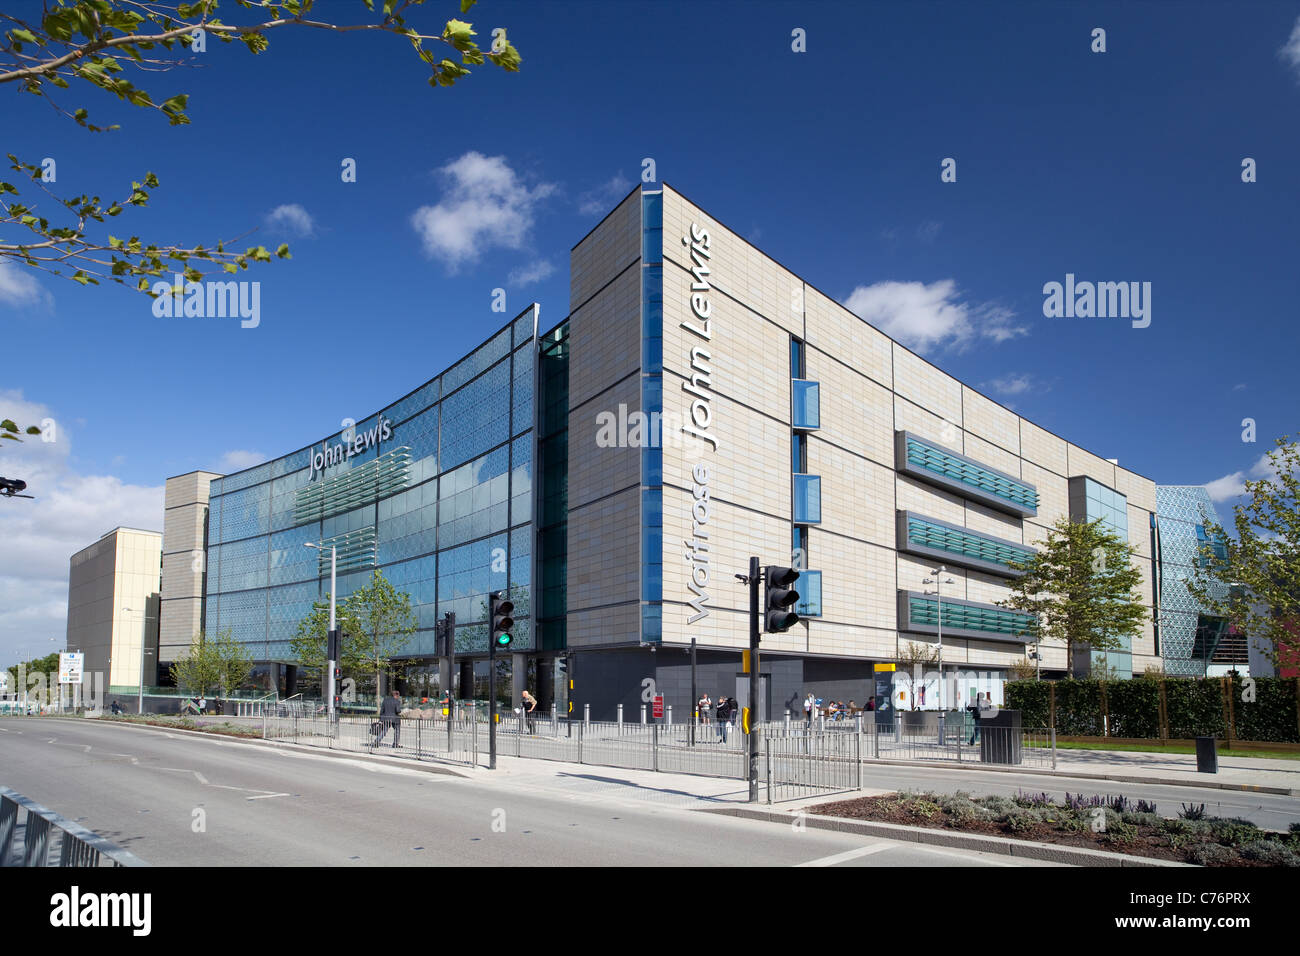 John Lewis Store at Westfield Stratford London Stock Photo